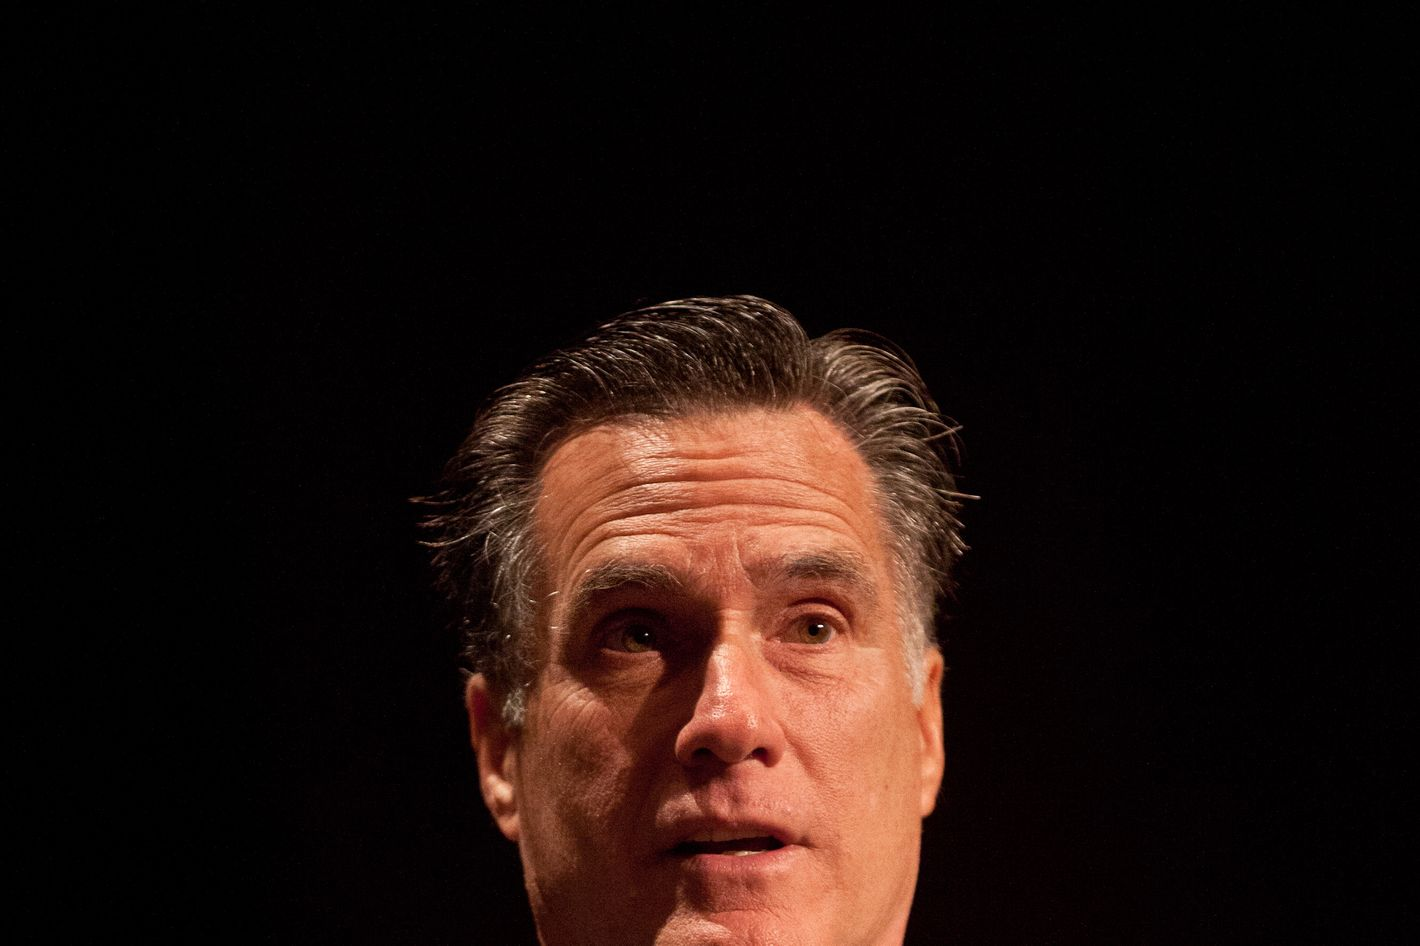 Republican presidential candidate former Massachusetts Gov. Mitt Romney speaks during a town hall meeting at the Memminger Auditorium on December 17, 2011 in Charleston, South Carolina.